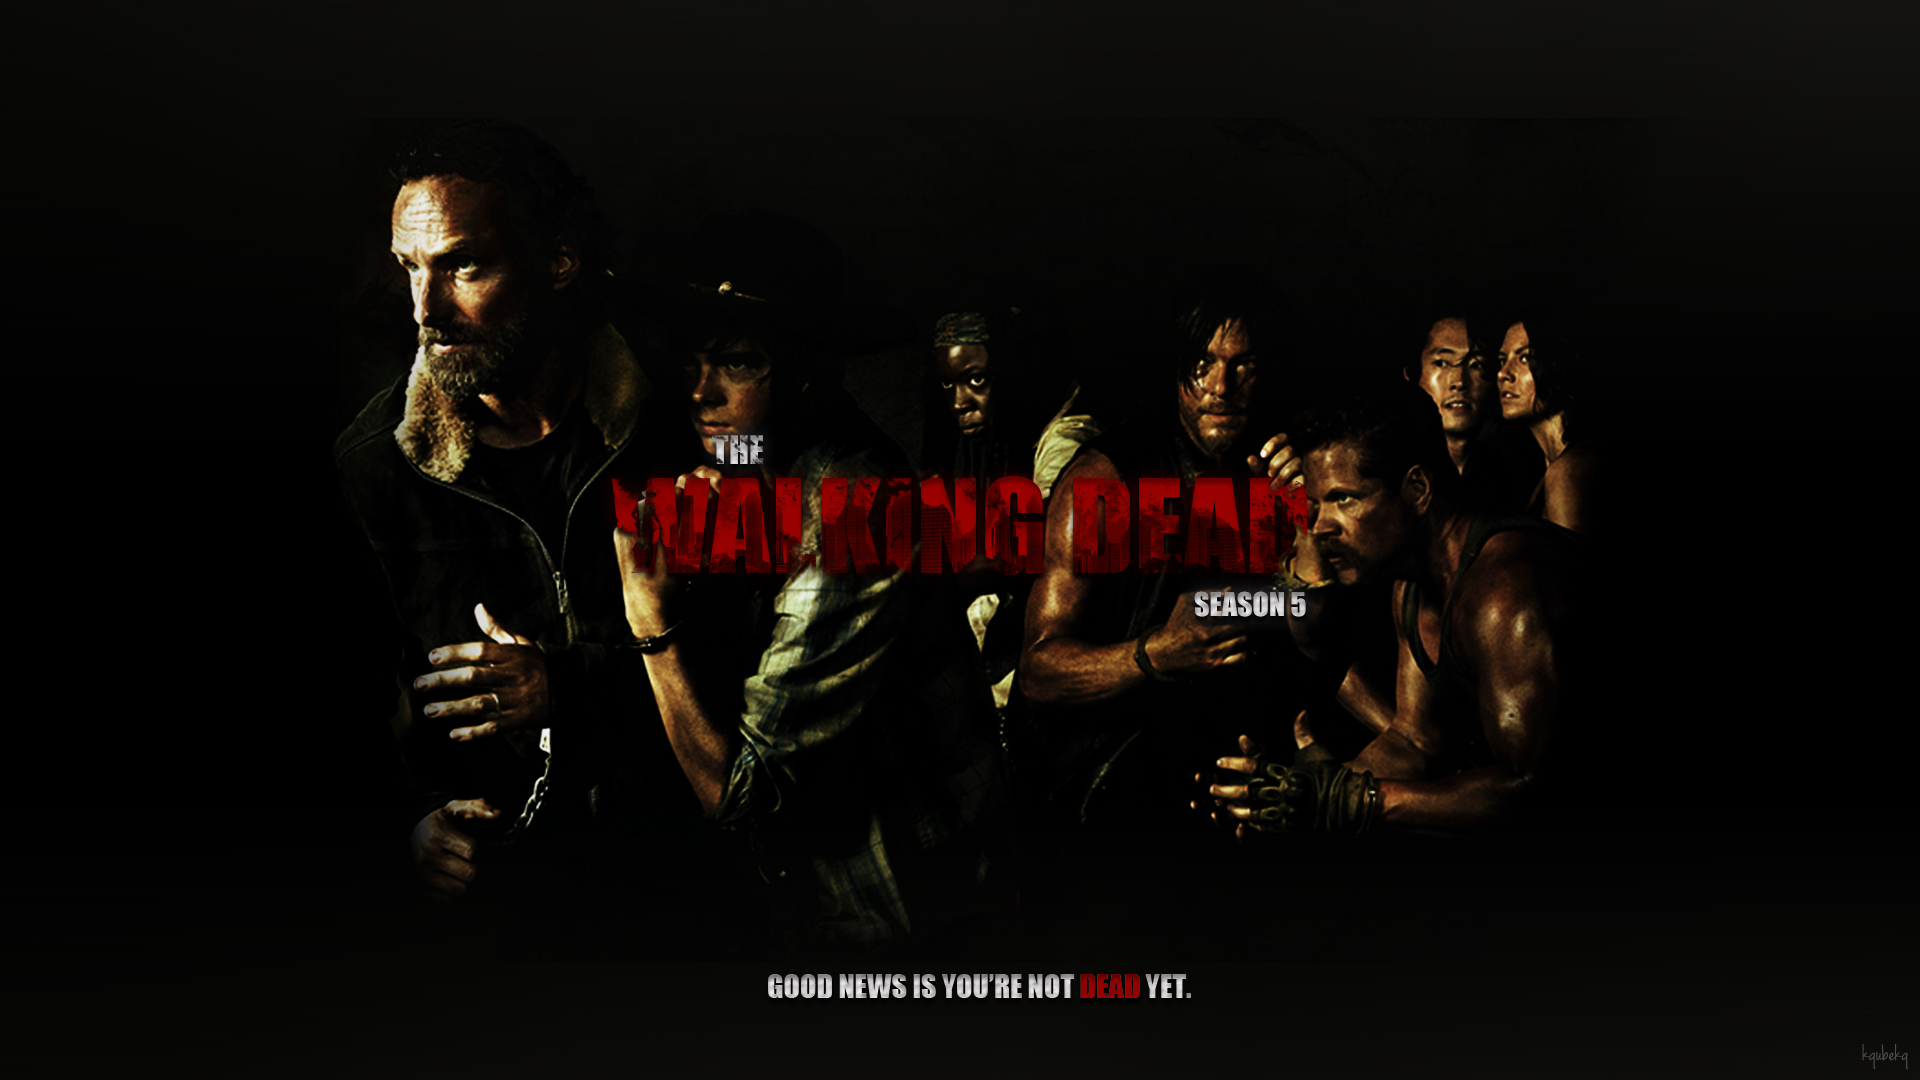 The Walking Dead 2014 Wallpapers (57 Wallpapers